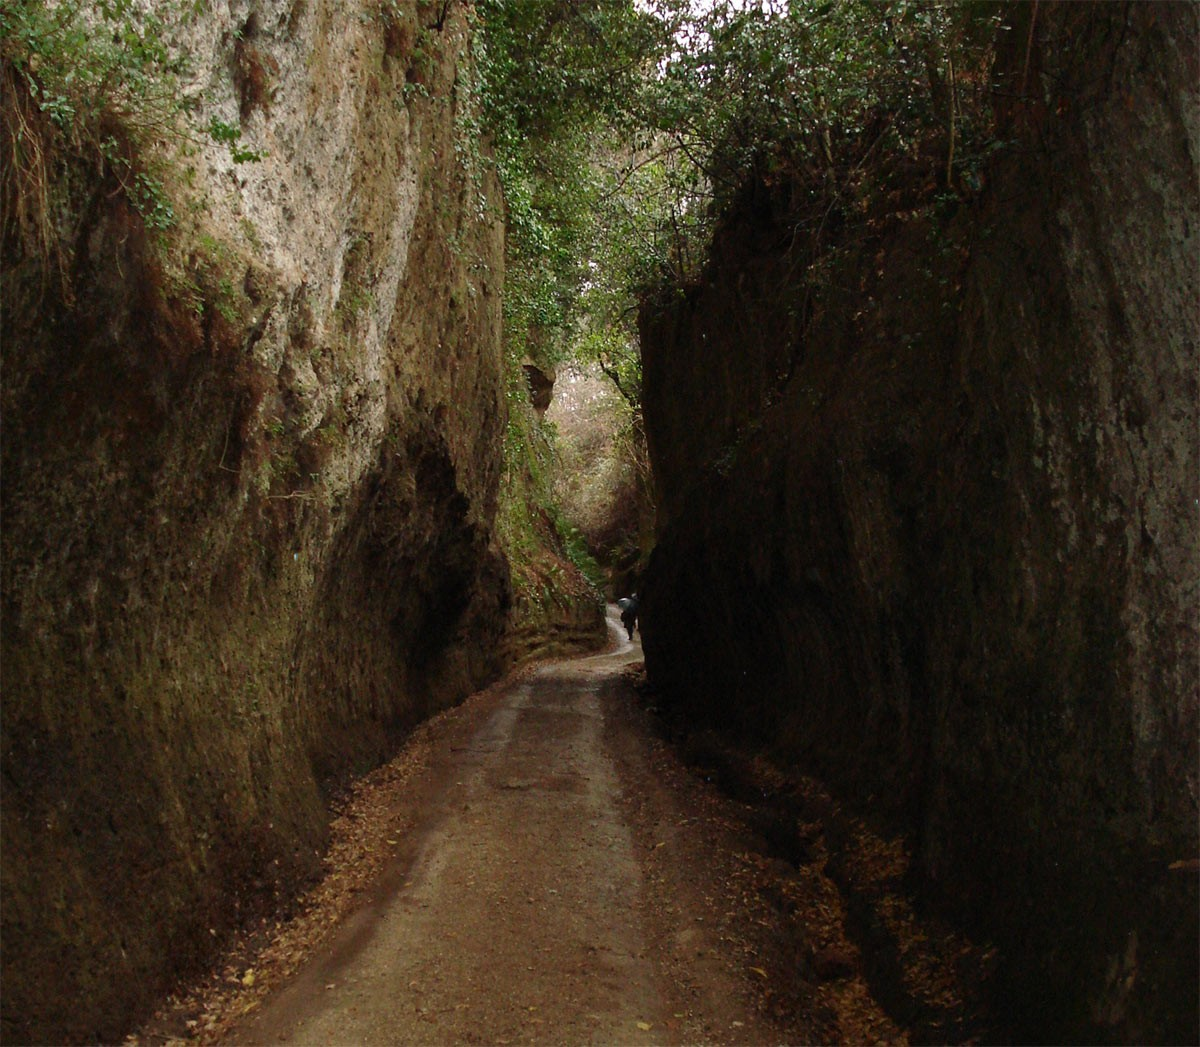 Weird Italy vie-cave-italy The Vie Cave, The Ancient Paths of Etruscan People Carved Into The Rocks Featured Italian History Magazine Nature in Italy What to see in Italy  vie cave via clodia tuscany sunken roads sovana sorano roman pitigliano maremma history grosseto etruscan etruria cavoni